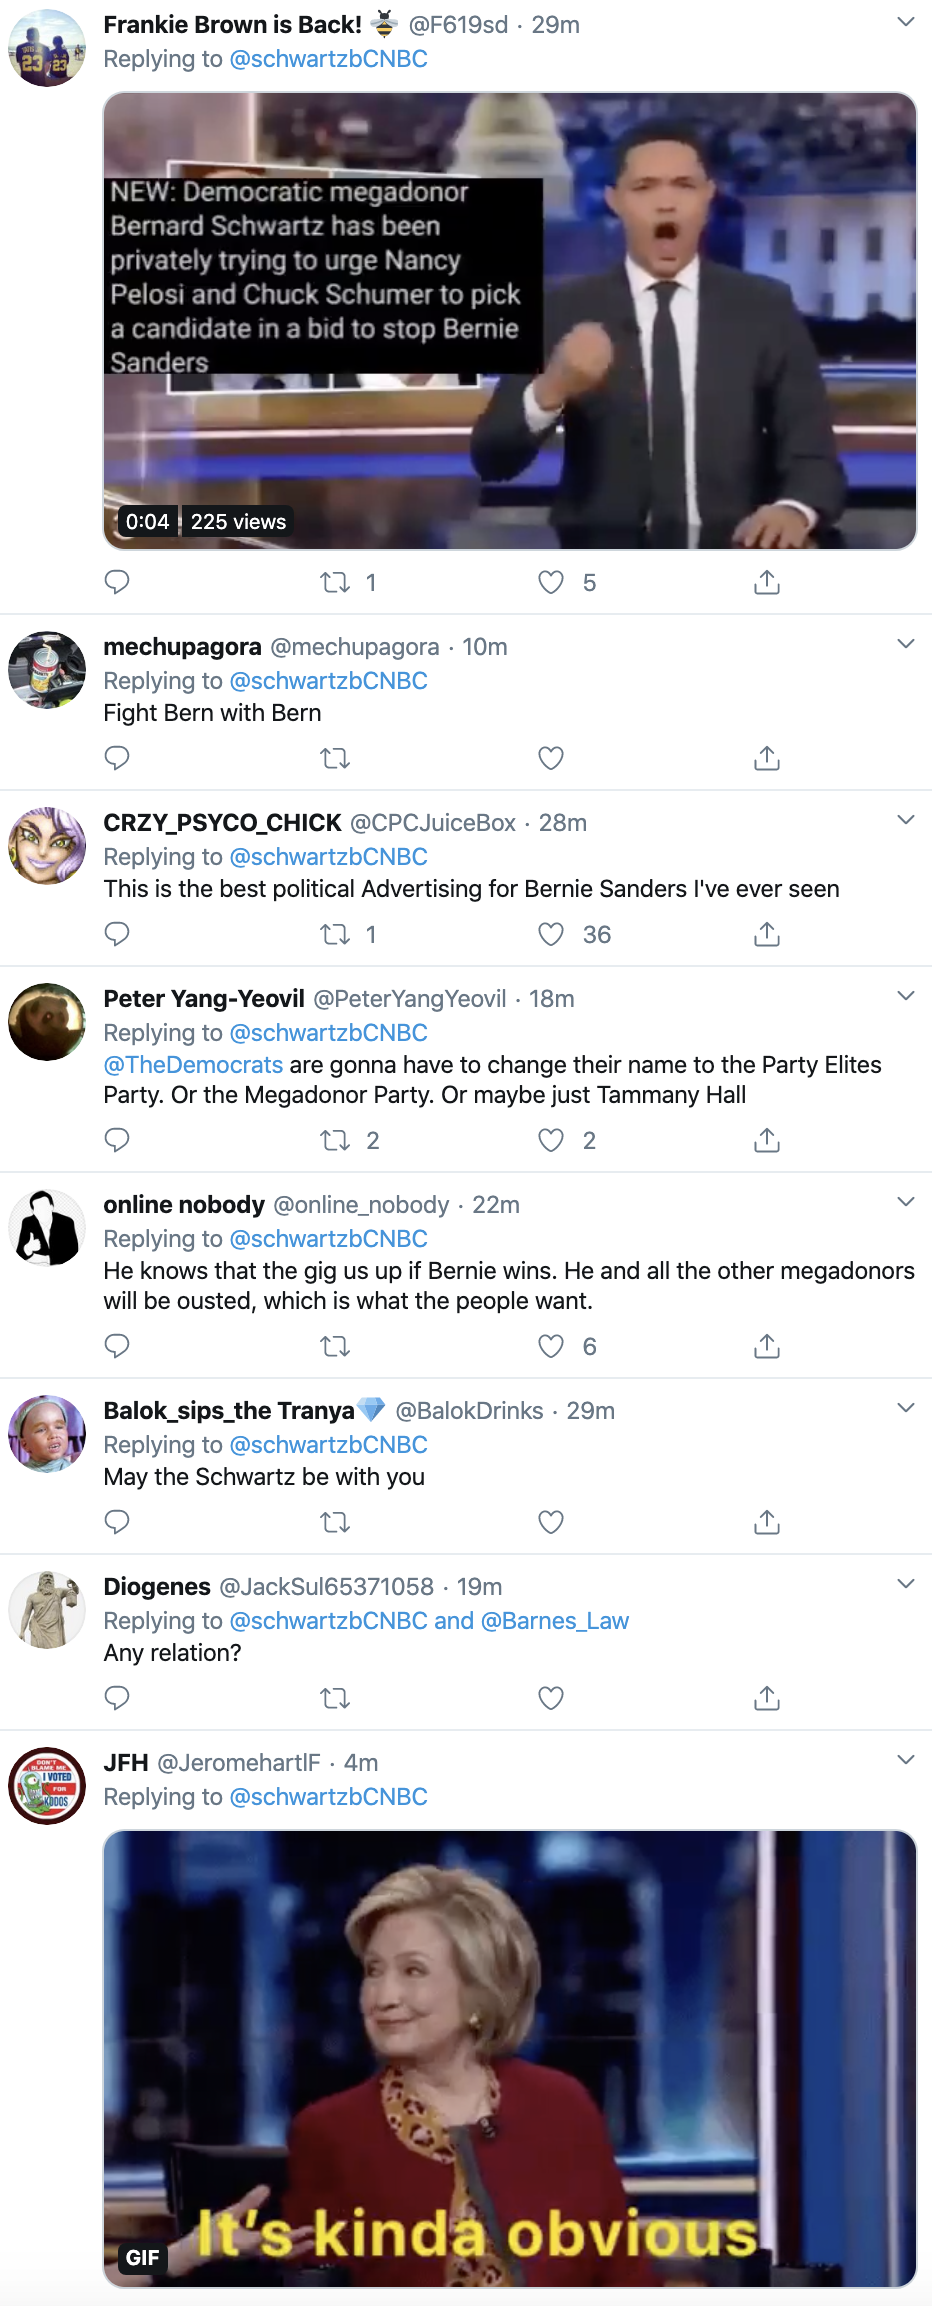 Screen-Shot-2020-02-26-at-4.56.07-PM Pelosi Releases Bernie Statement That Has Sanders Fans Cheering Domestic Policy Election 2020 Featured Politics Top Stories